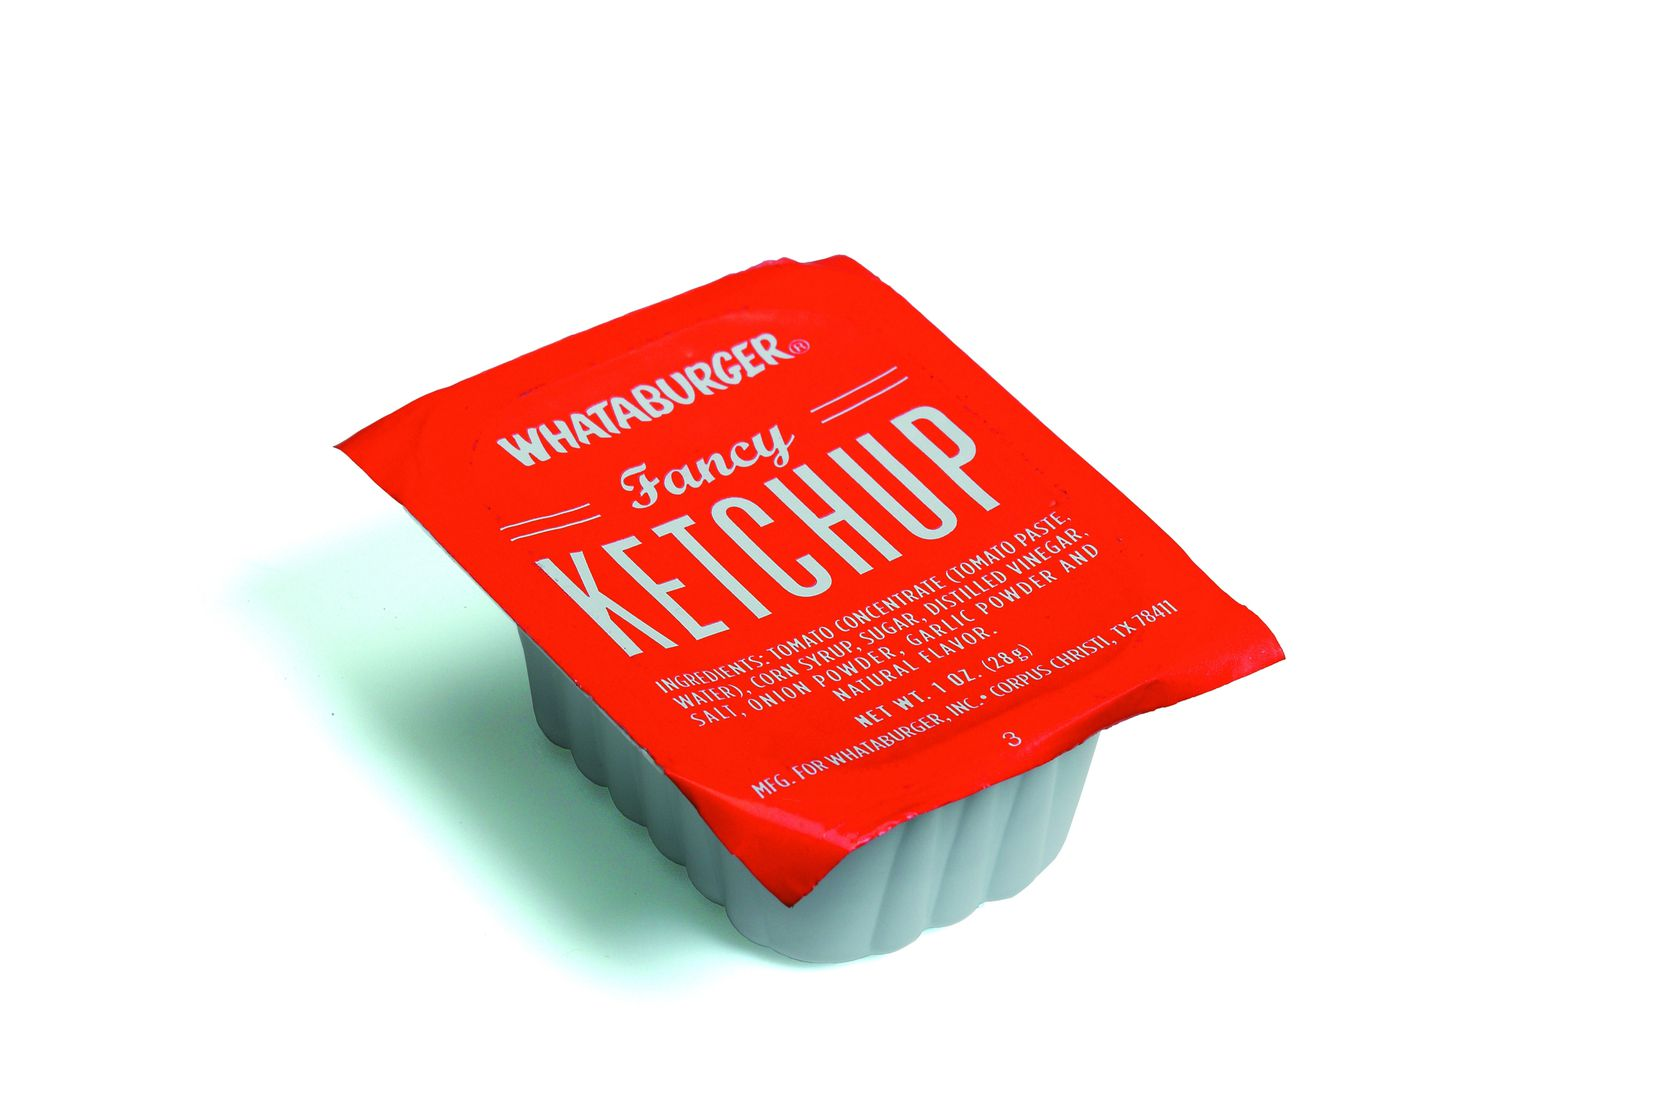 We know ingredients to Whataburger's fancy ketchup, but not the exact recipe.